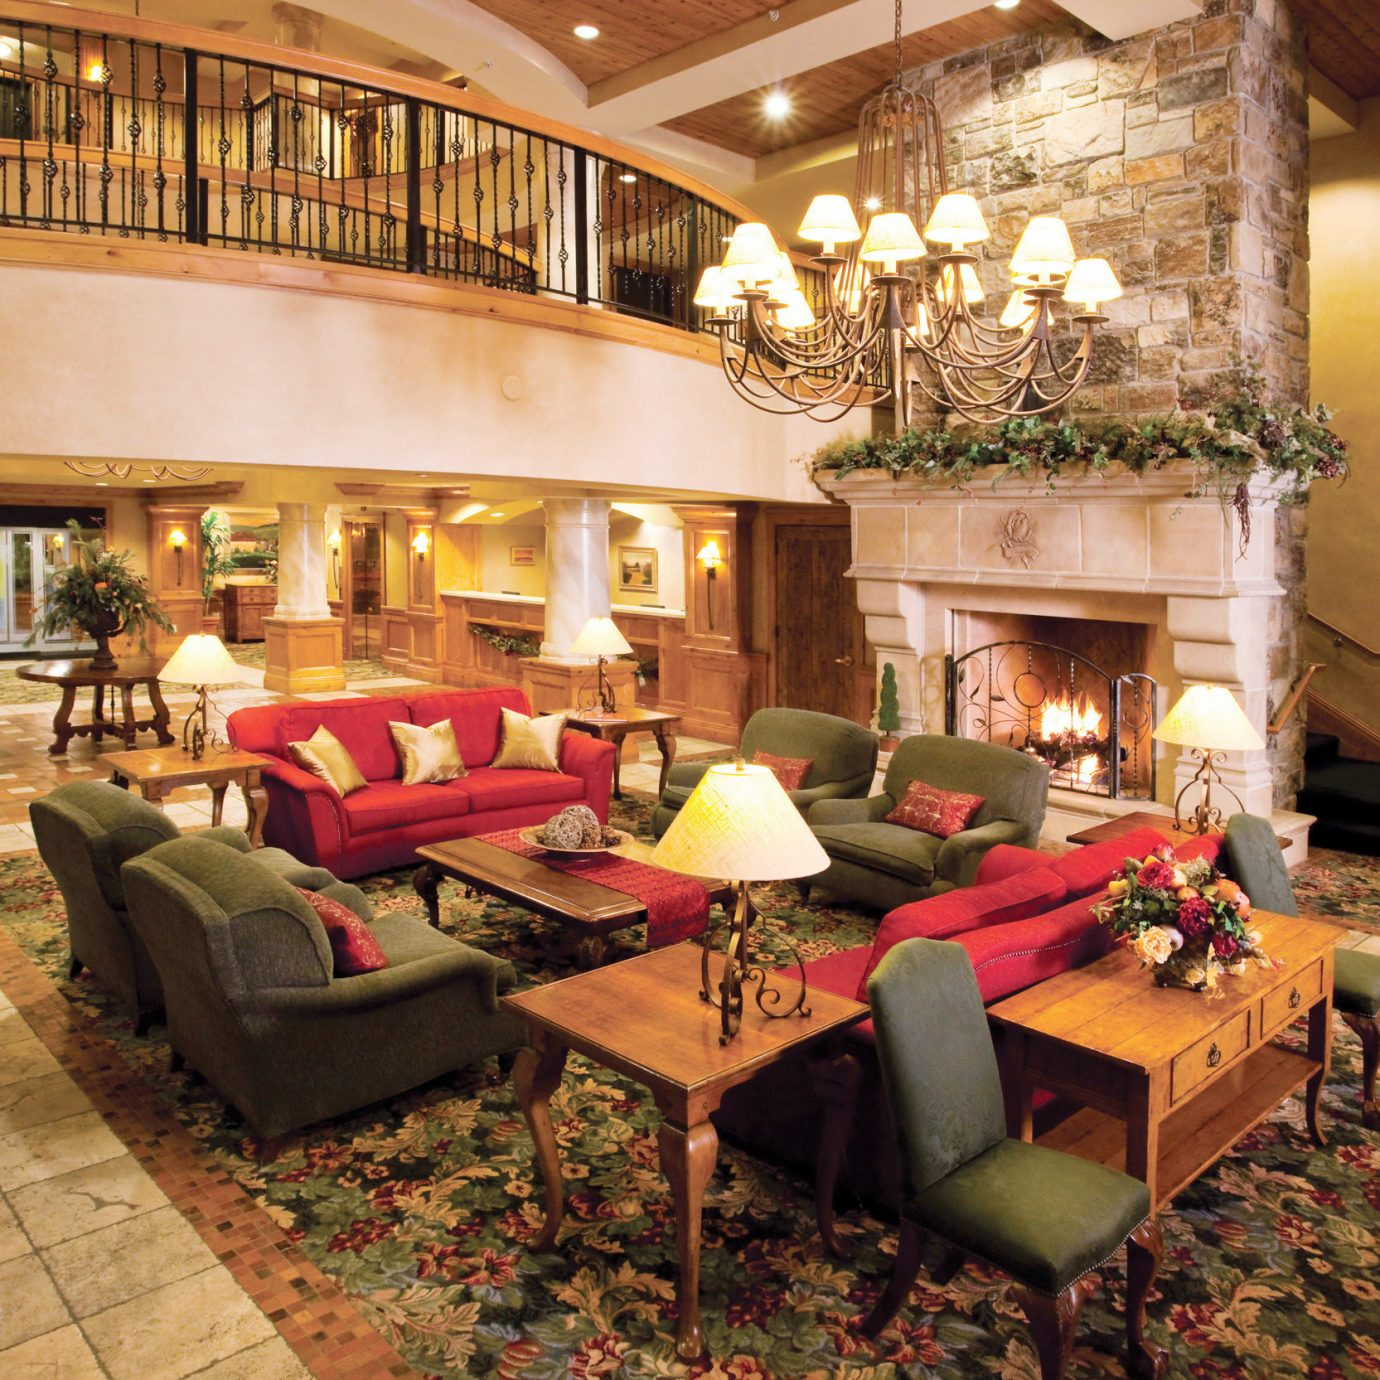 Fireplace Lounge Resort Rustic property living room home mansion Villa Lobby cottage hacienda recreation room